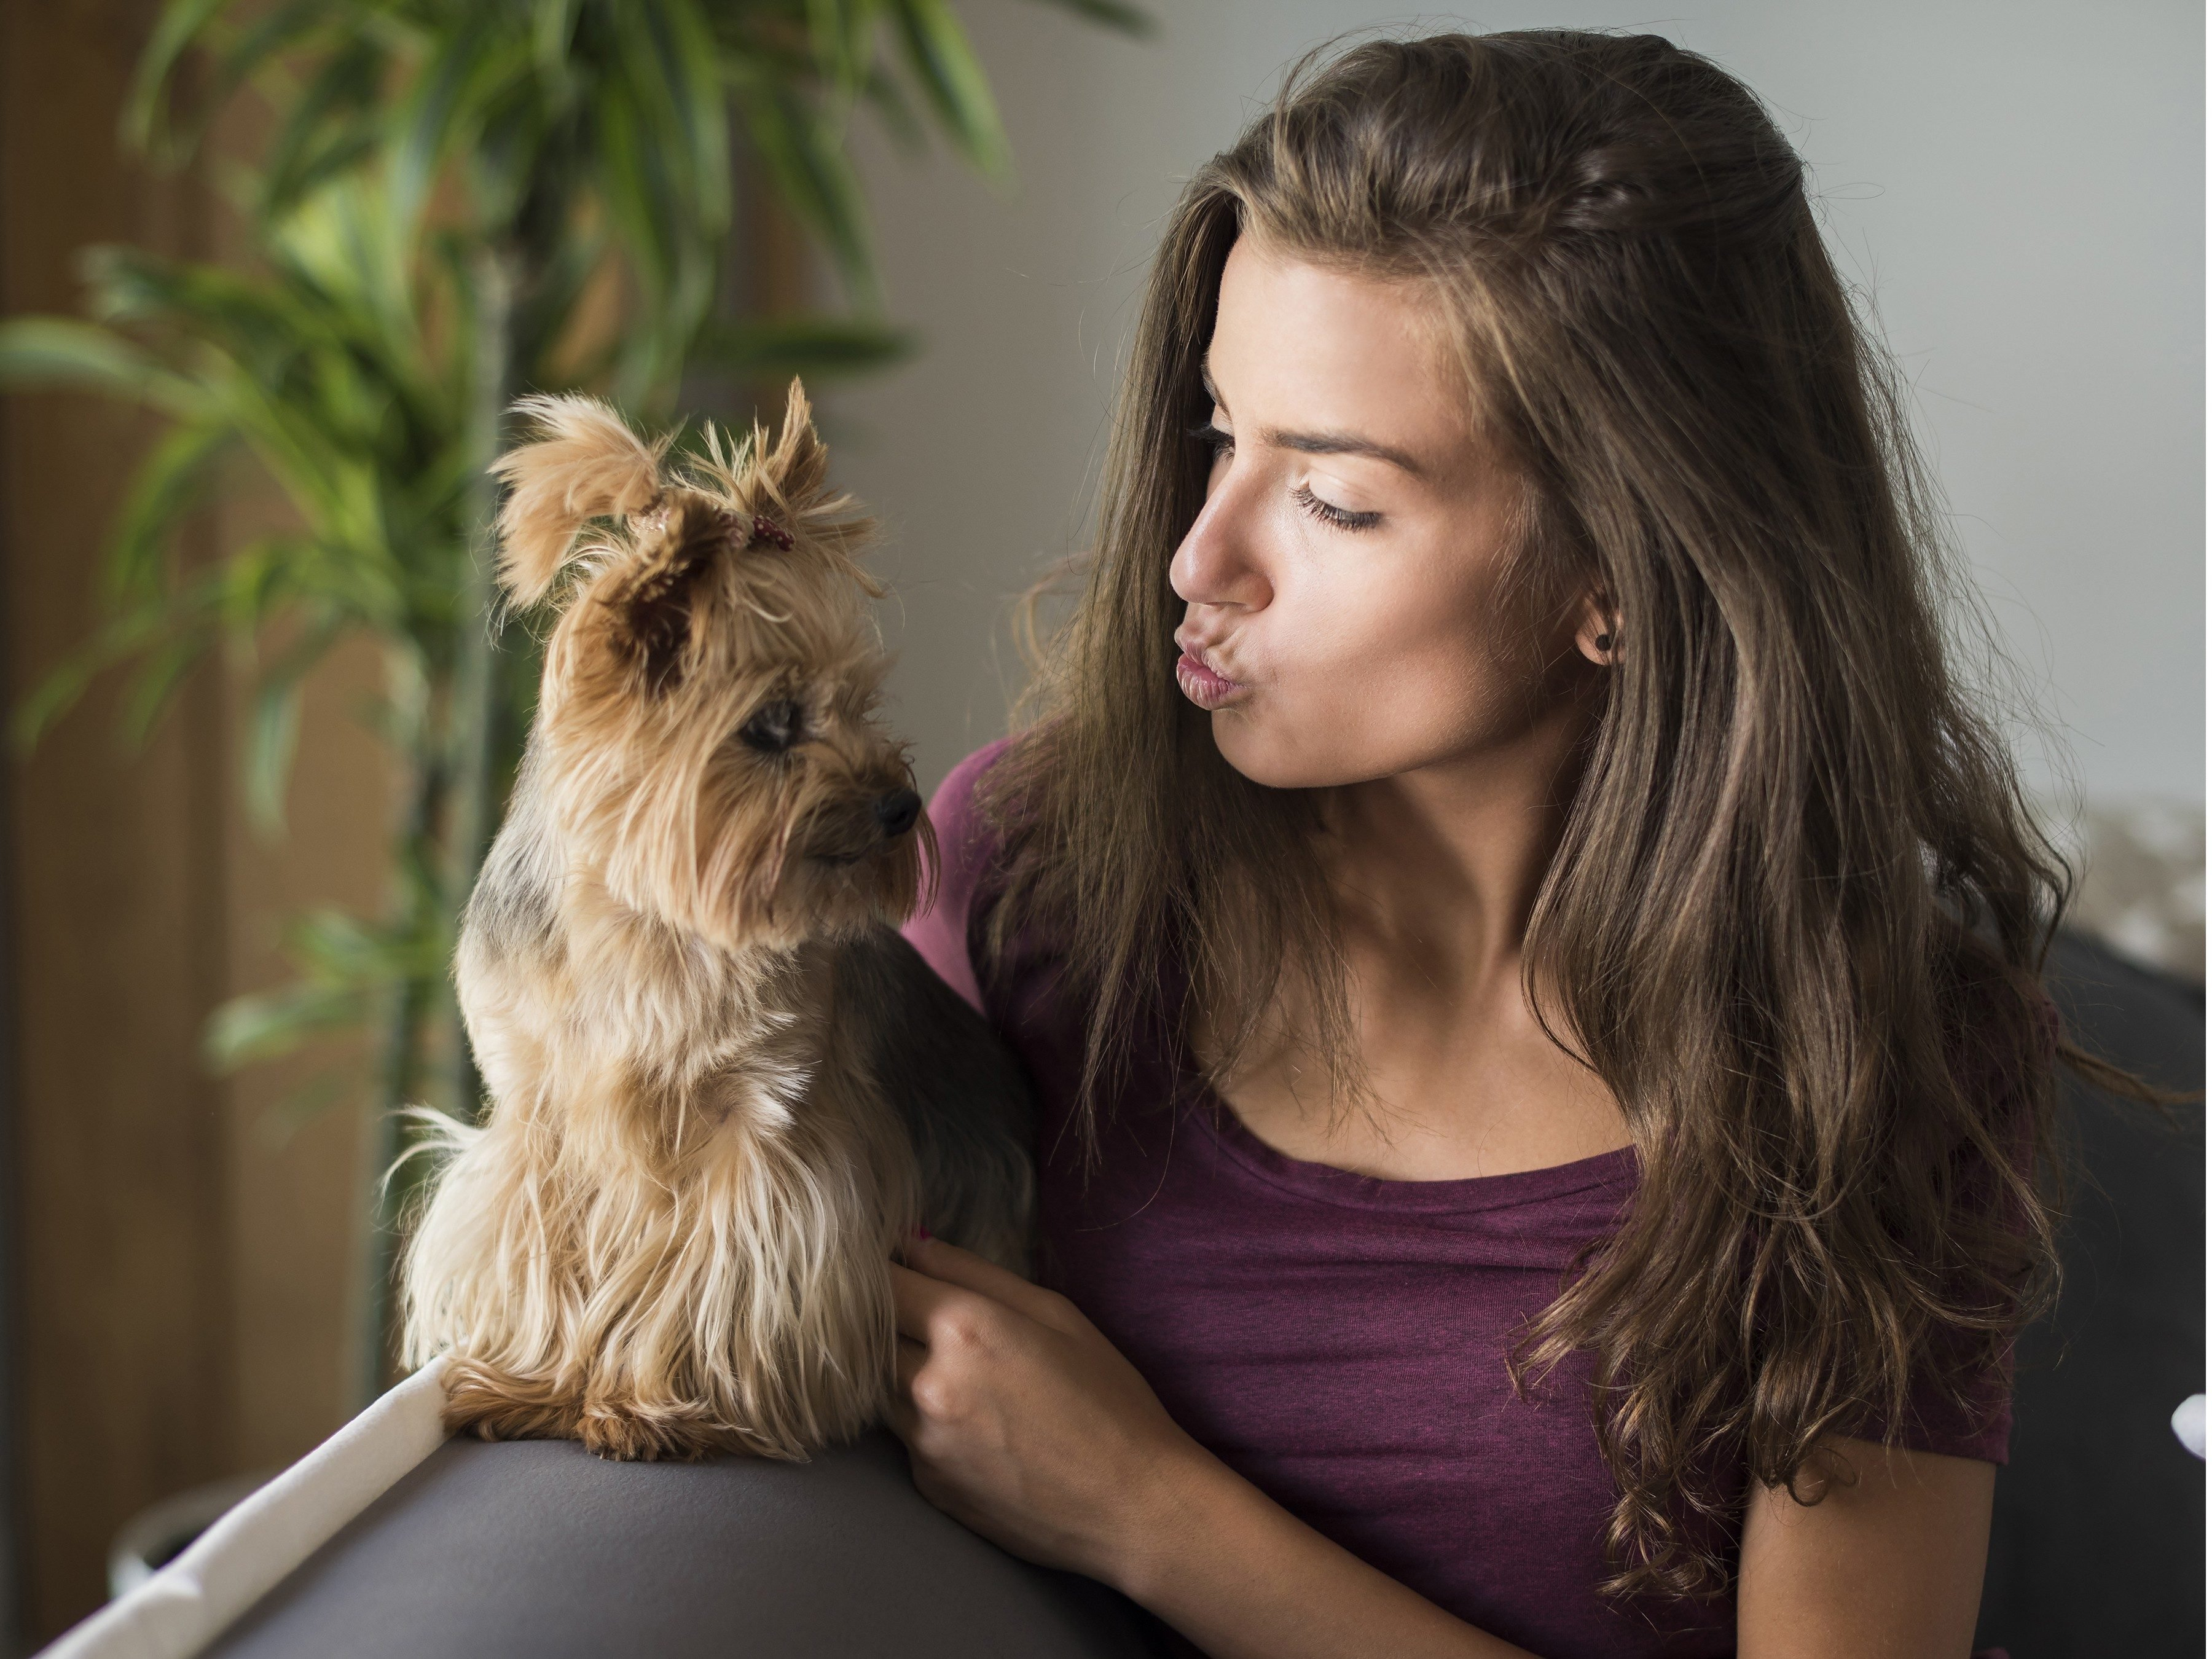 Your choice of dog says a lot about your personality